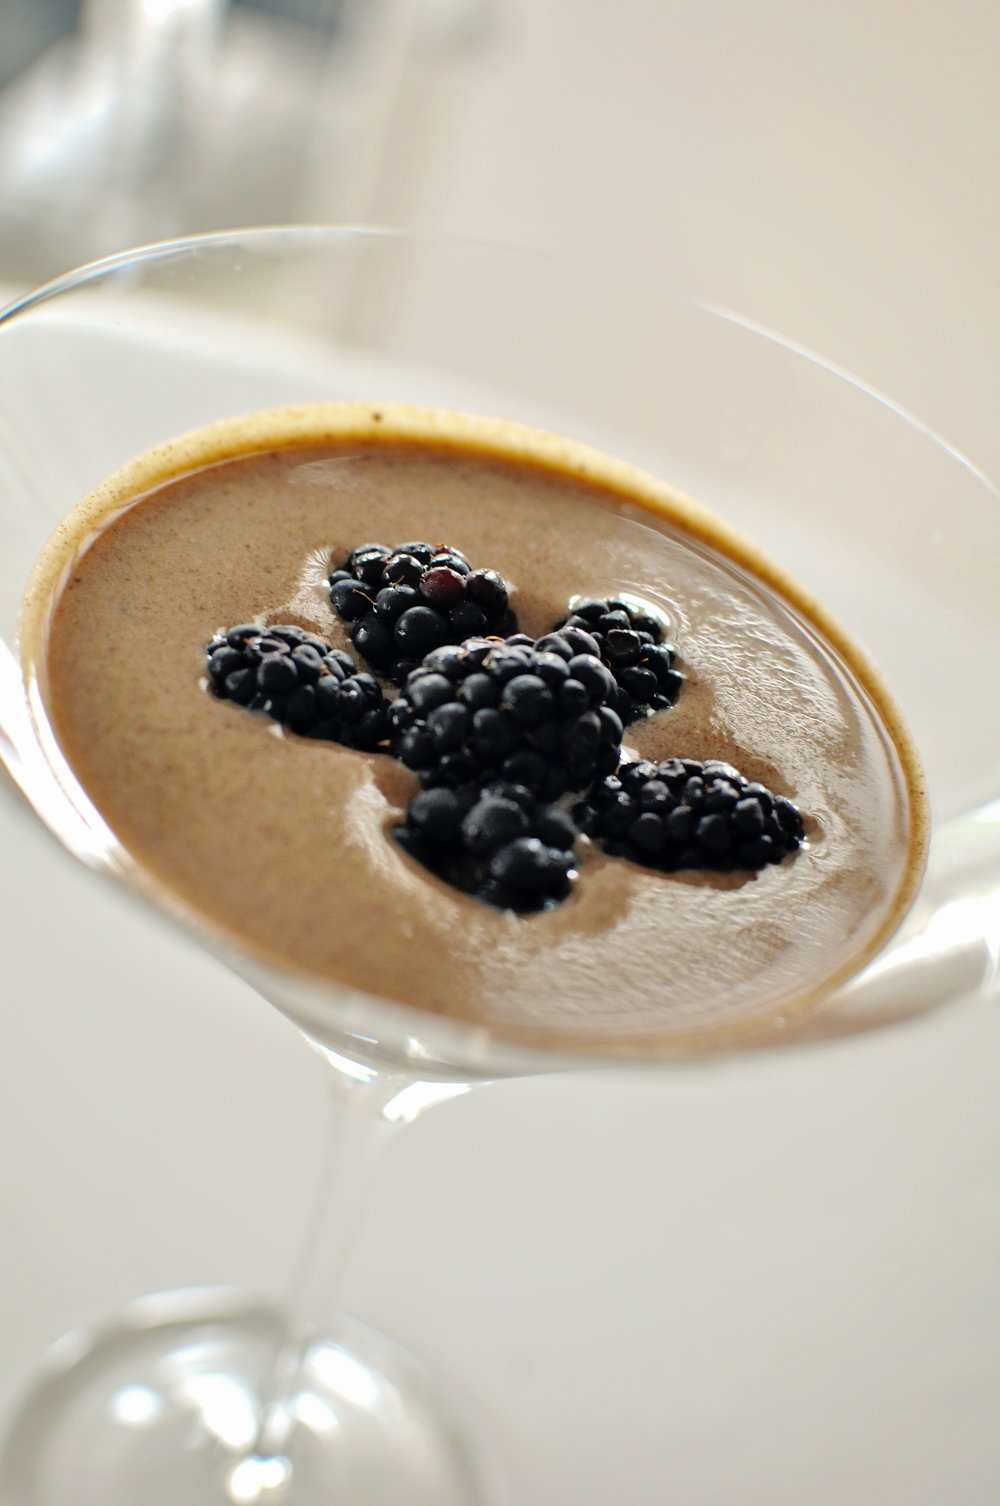 Chocolate Creme Anglaise with Berries